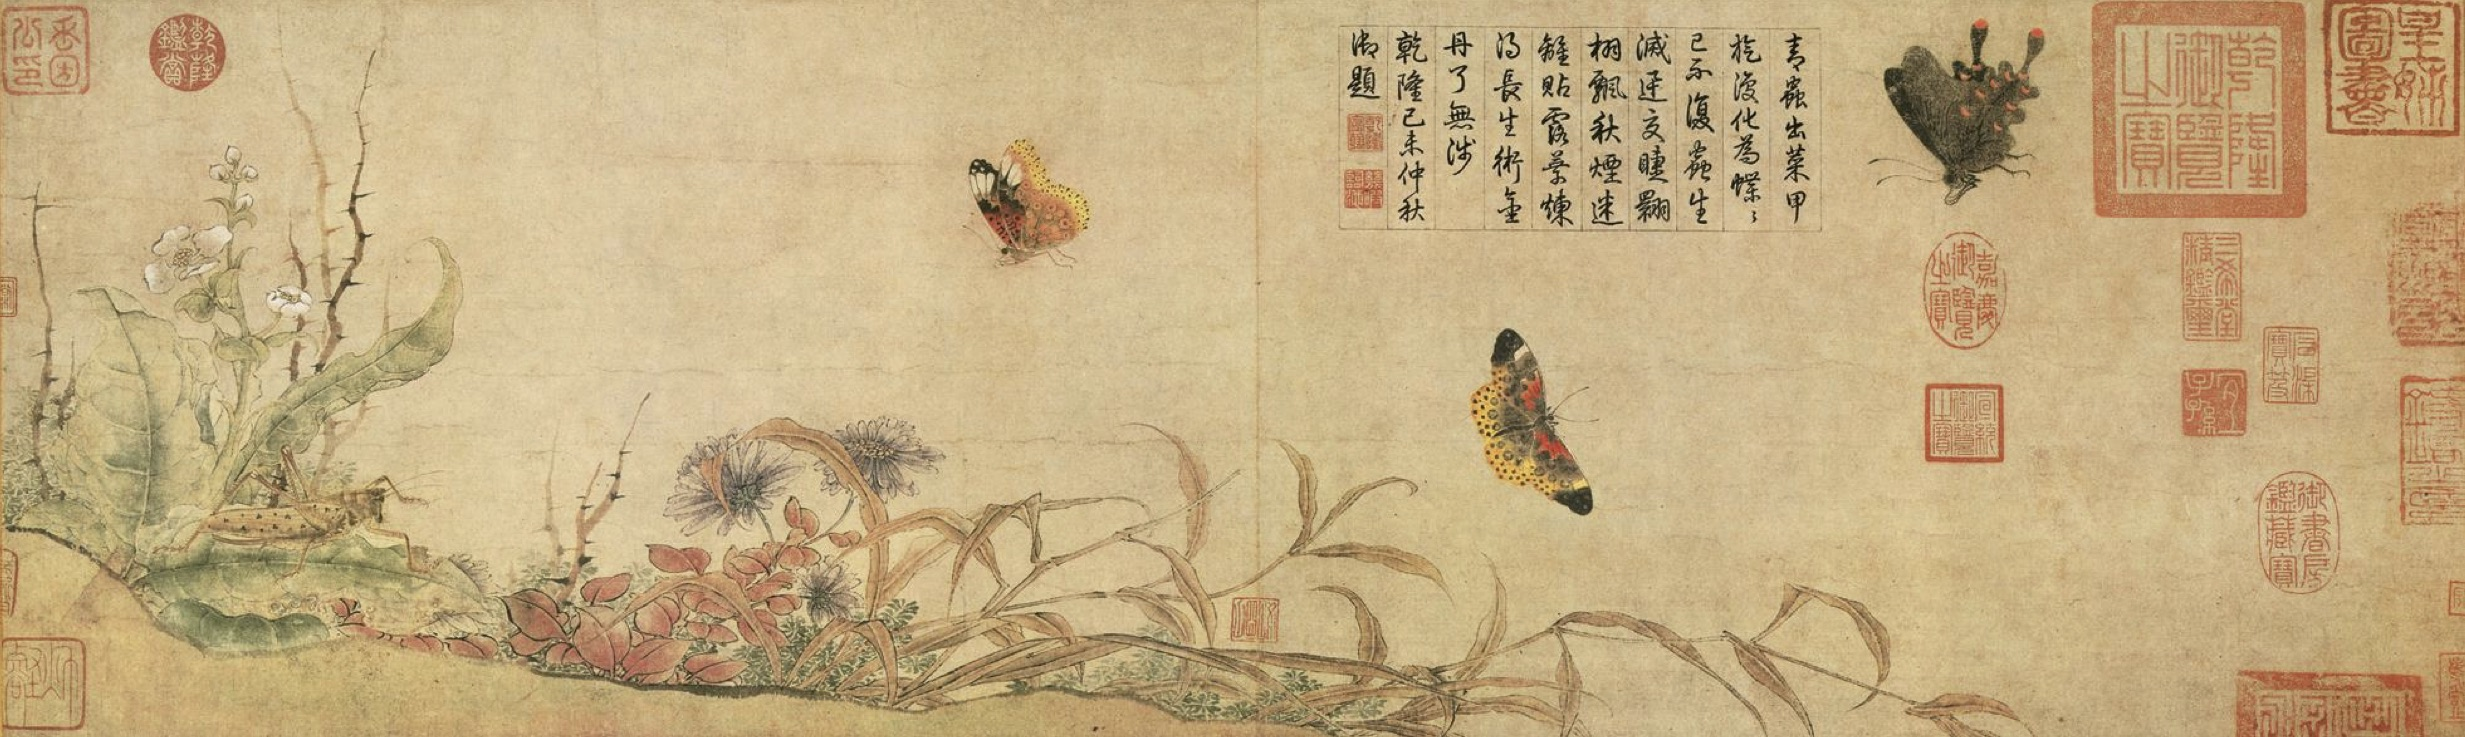 Professor Shane McCausland 3 Feb 2021 Tracings of the Chinese Picture-Scroll (圖卷 tujuan) in History poster image